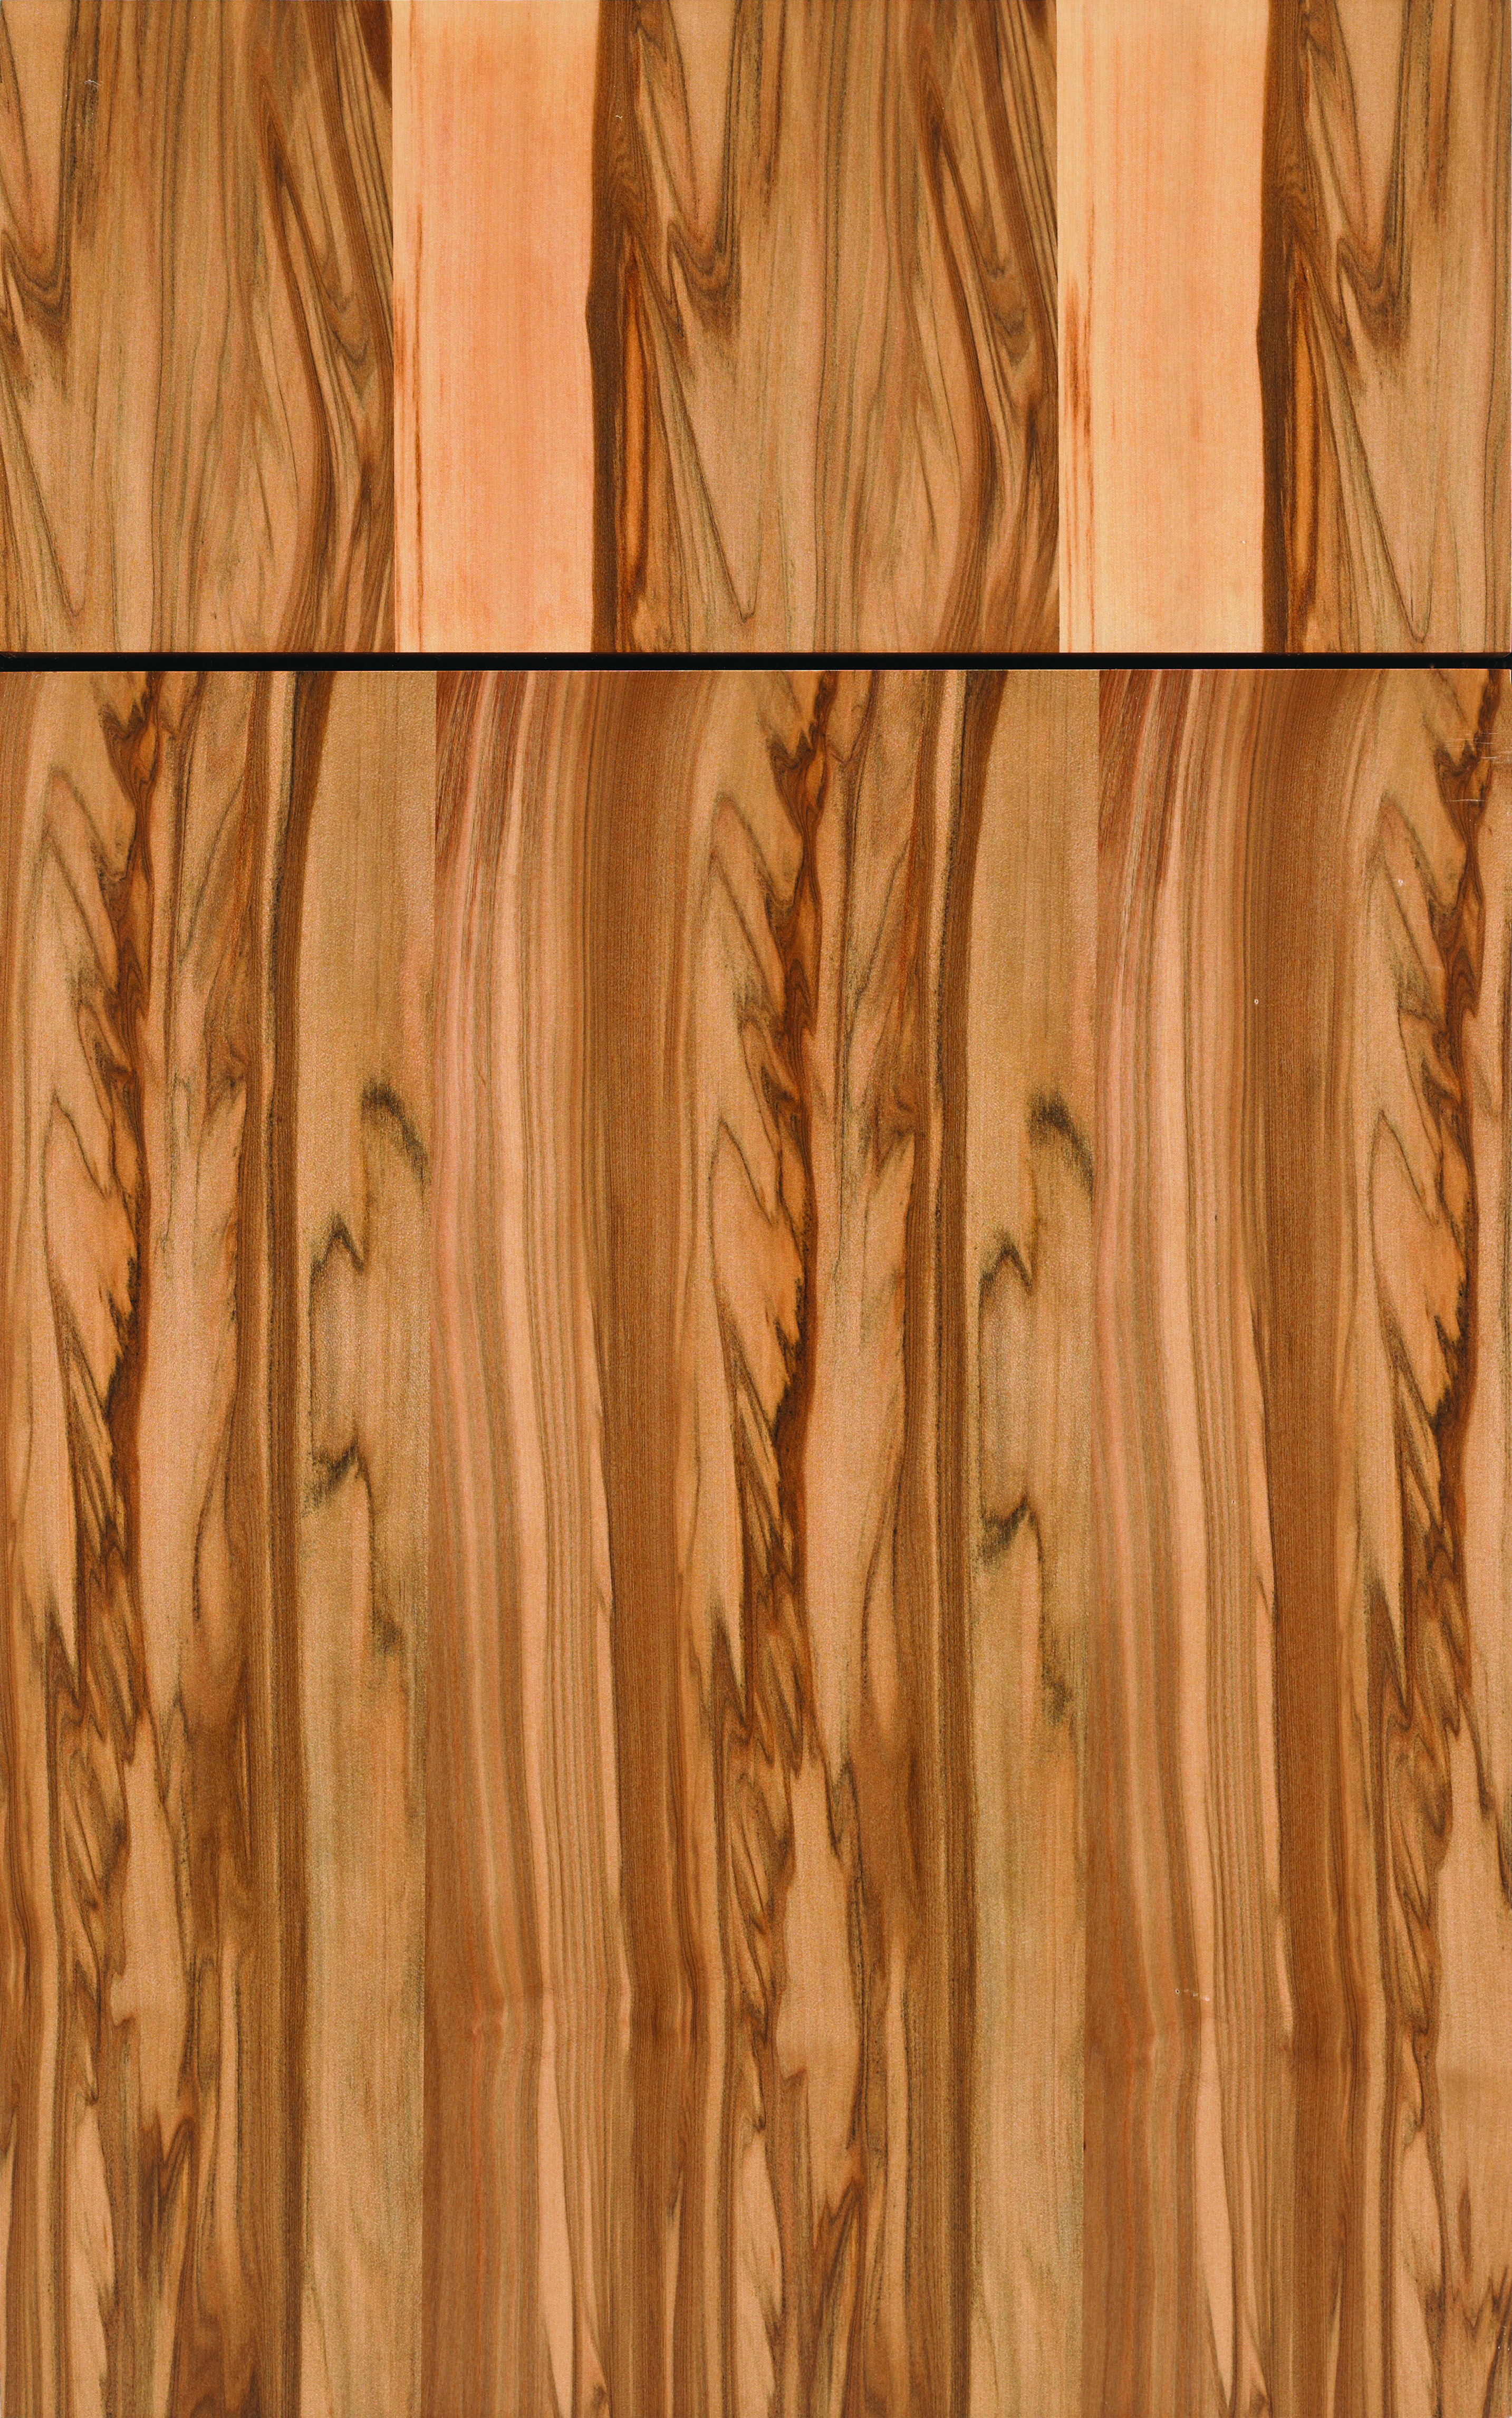 This Design Craft Doorstyle Is Bella And The Wood Specie Is